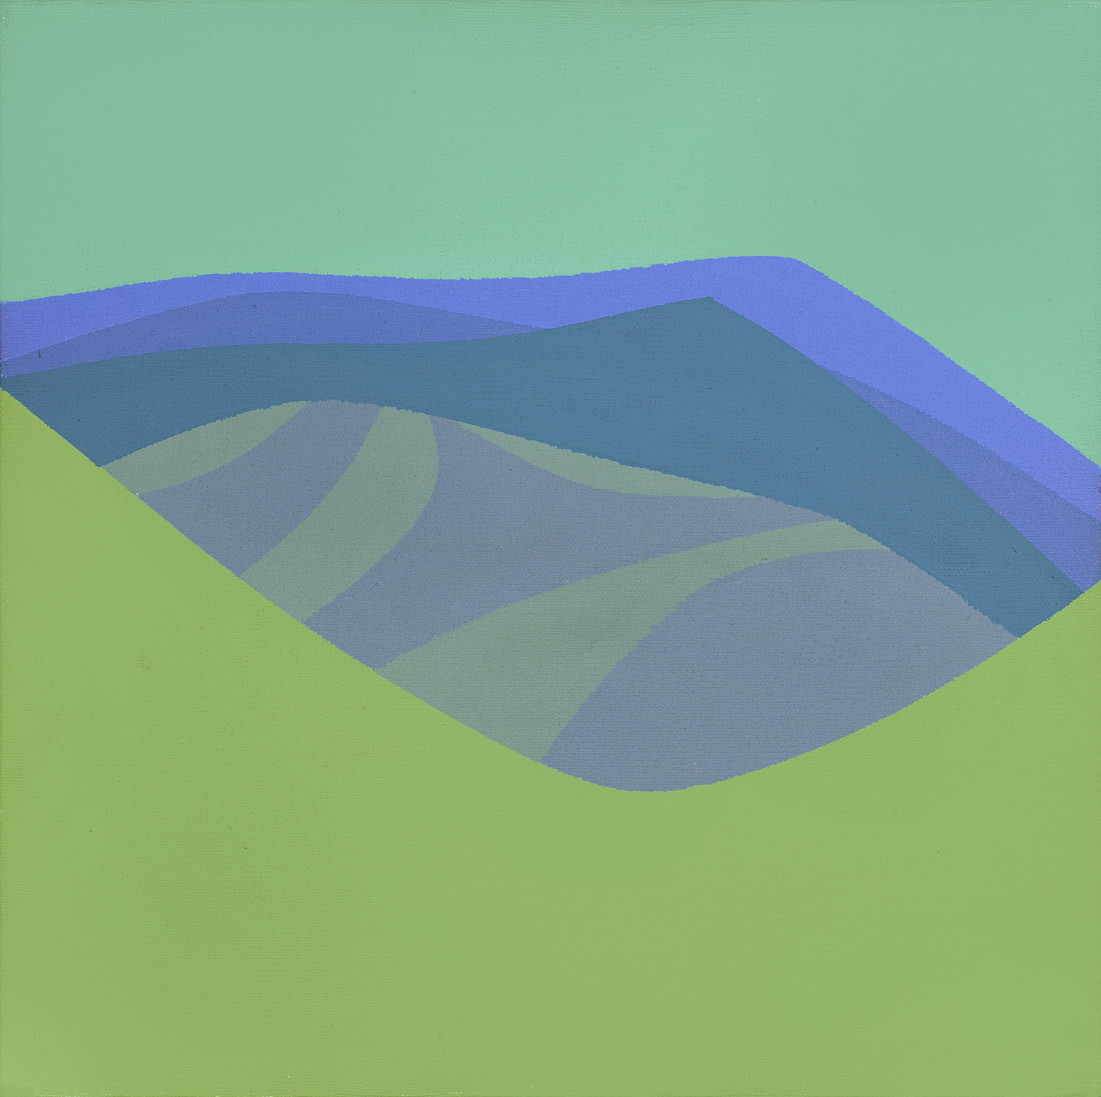 Blue Hills , 1967  Acrylic on canvas 12 x 12 inches; 30.5 x 30.5 centimeters